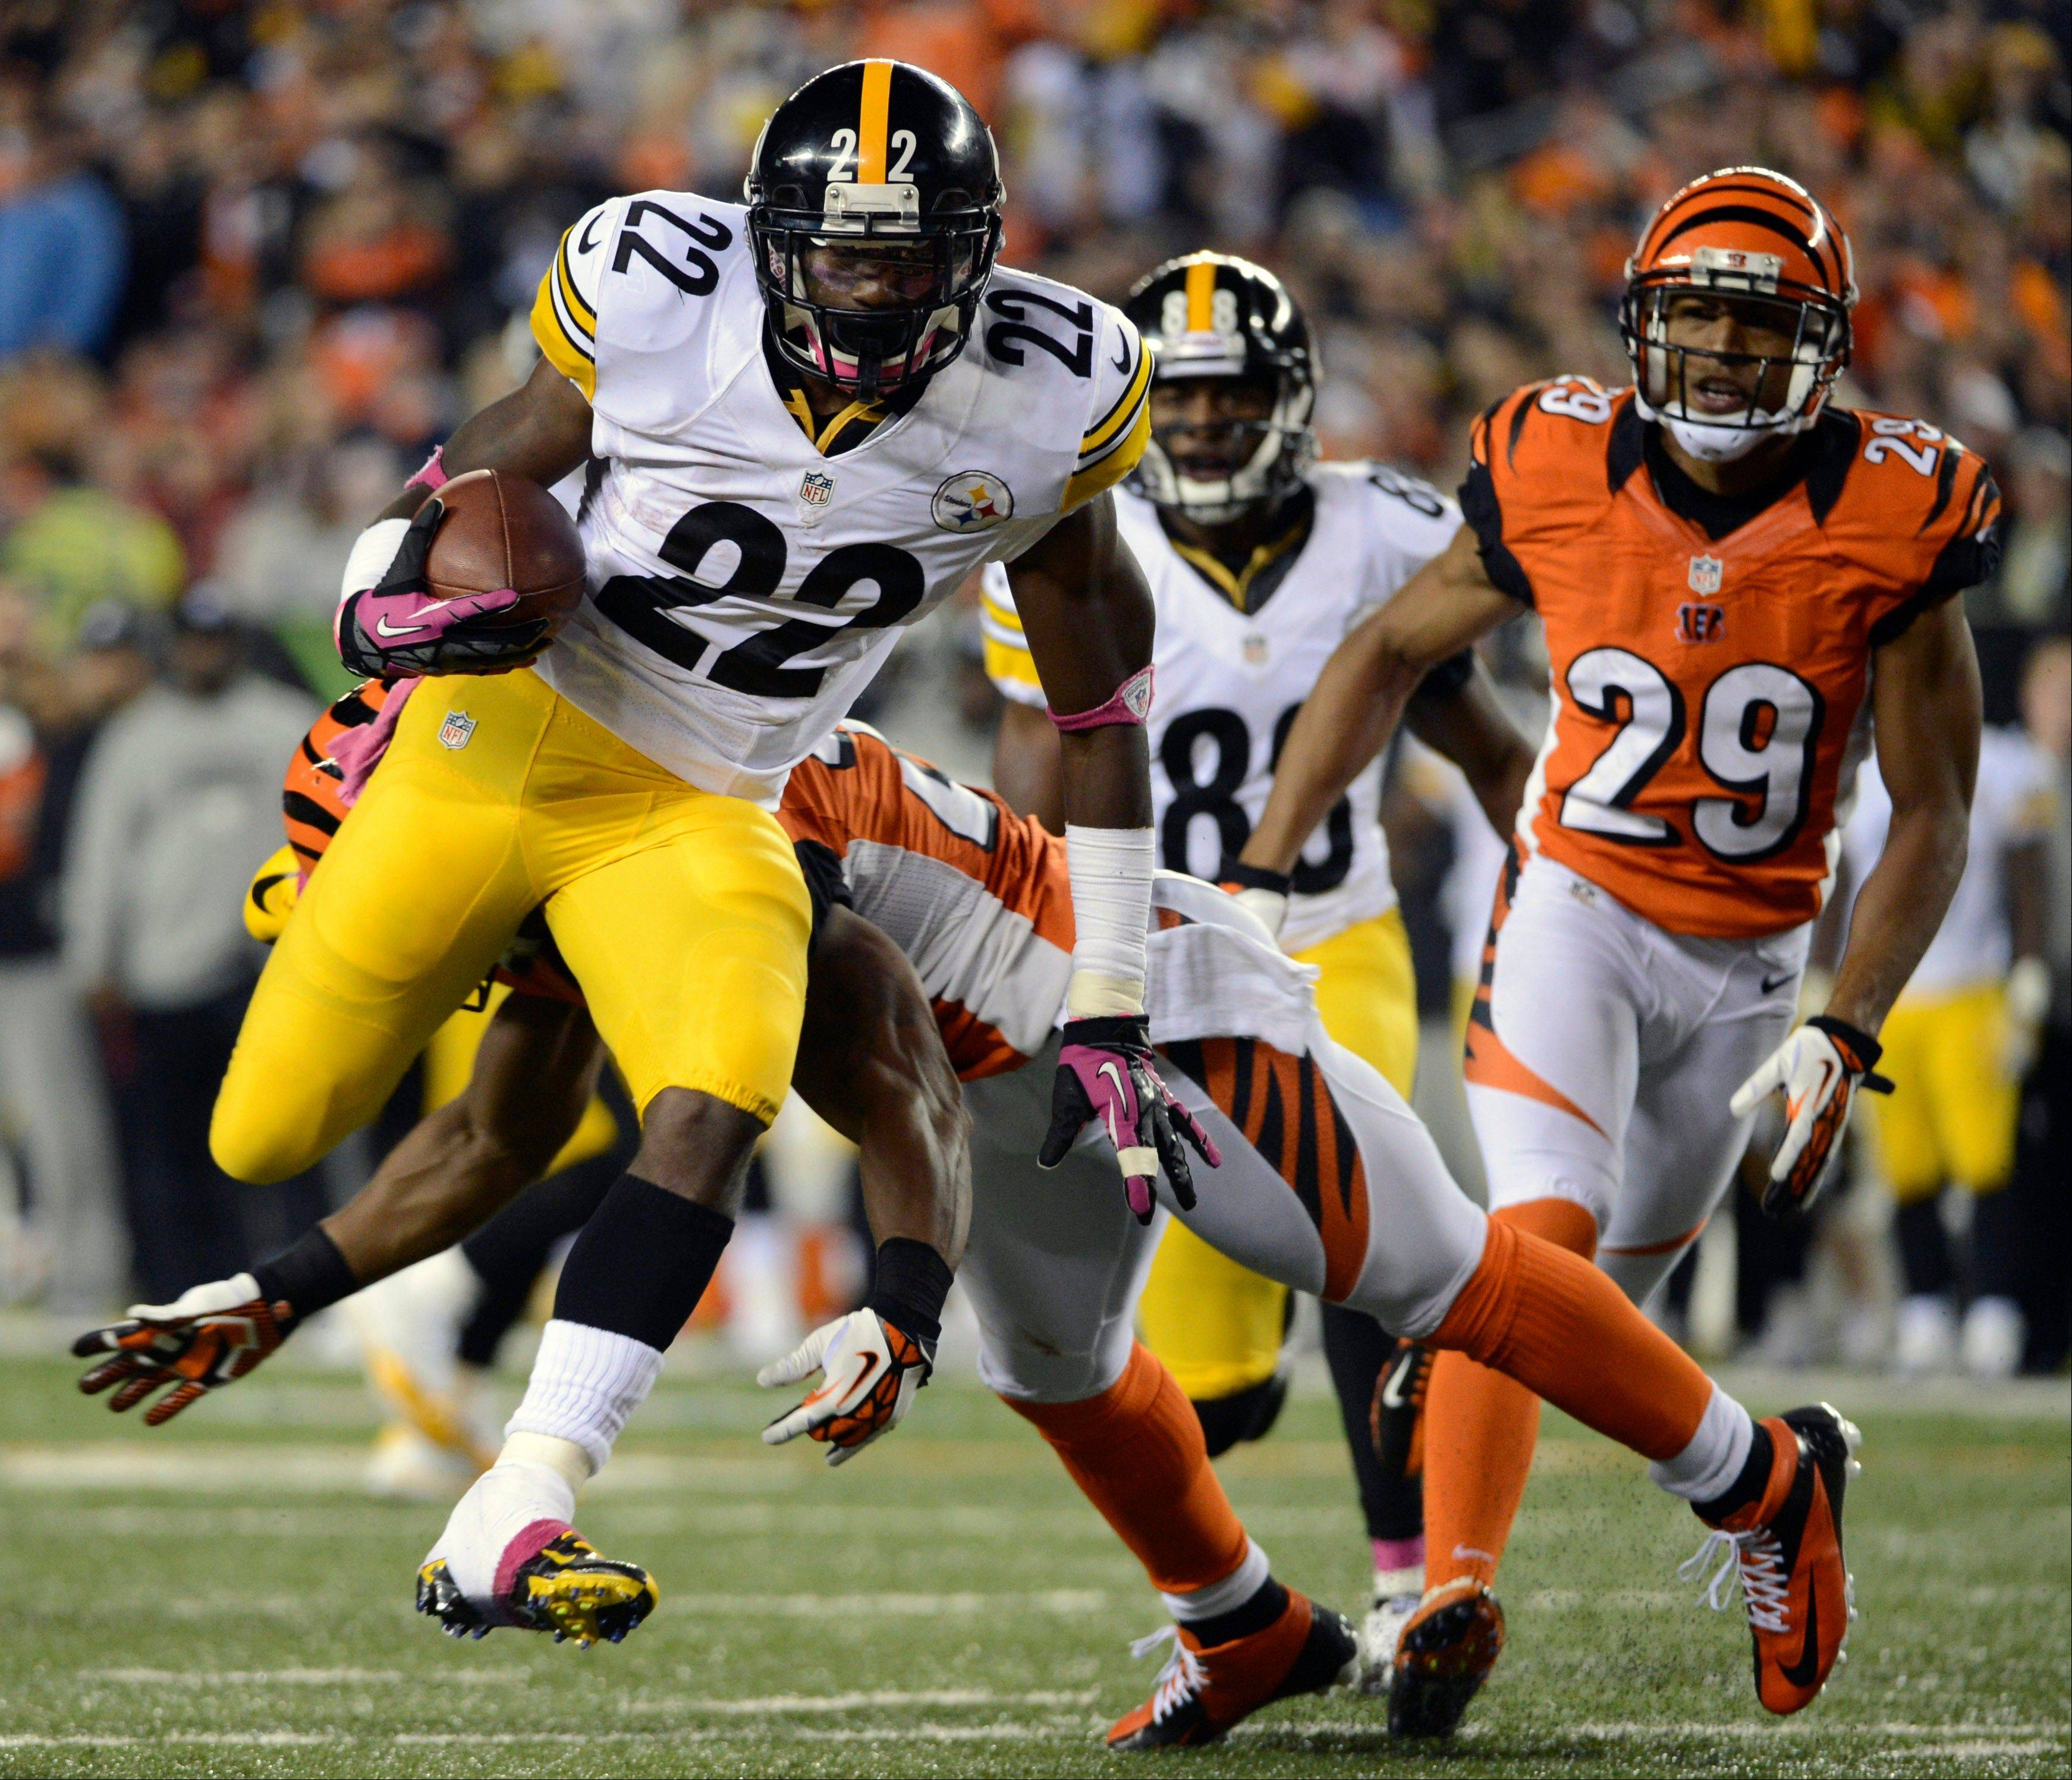 Pittsburgh Steelers running back Chris Rainey runs past Cincinnati Bengals safety Nate Clements to score a touchdown in the second Sunday in Cincinnati.